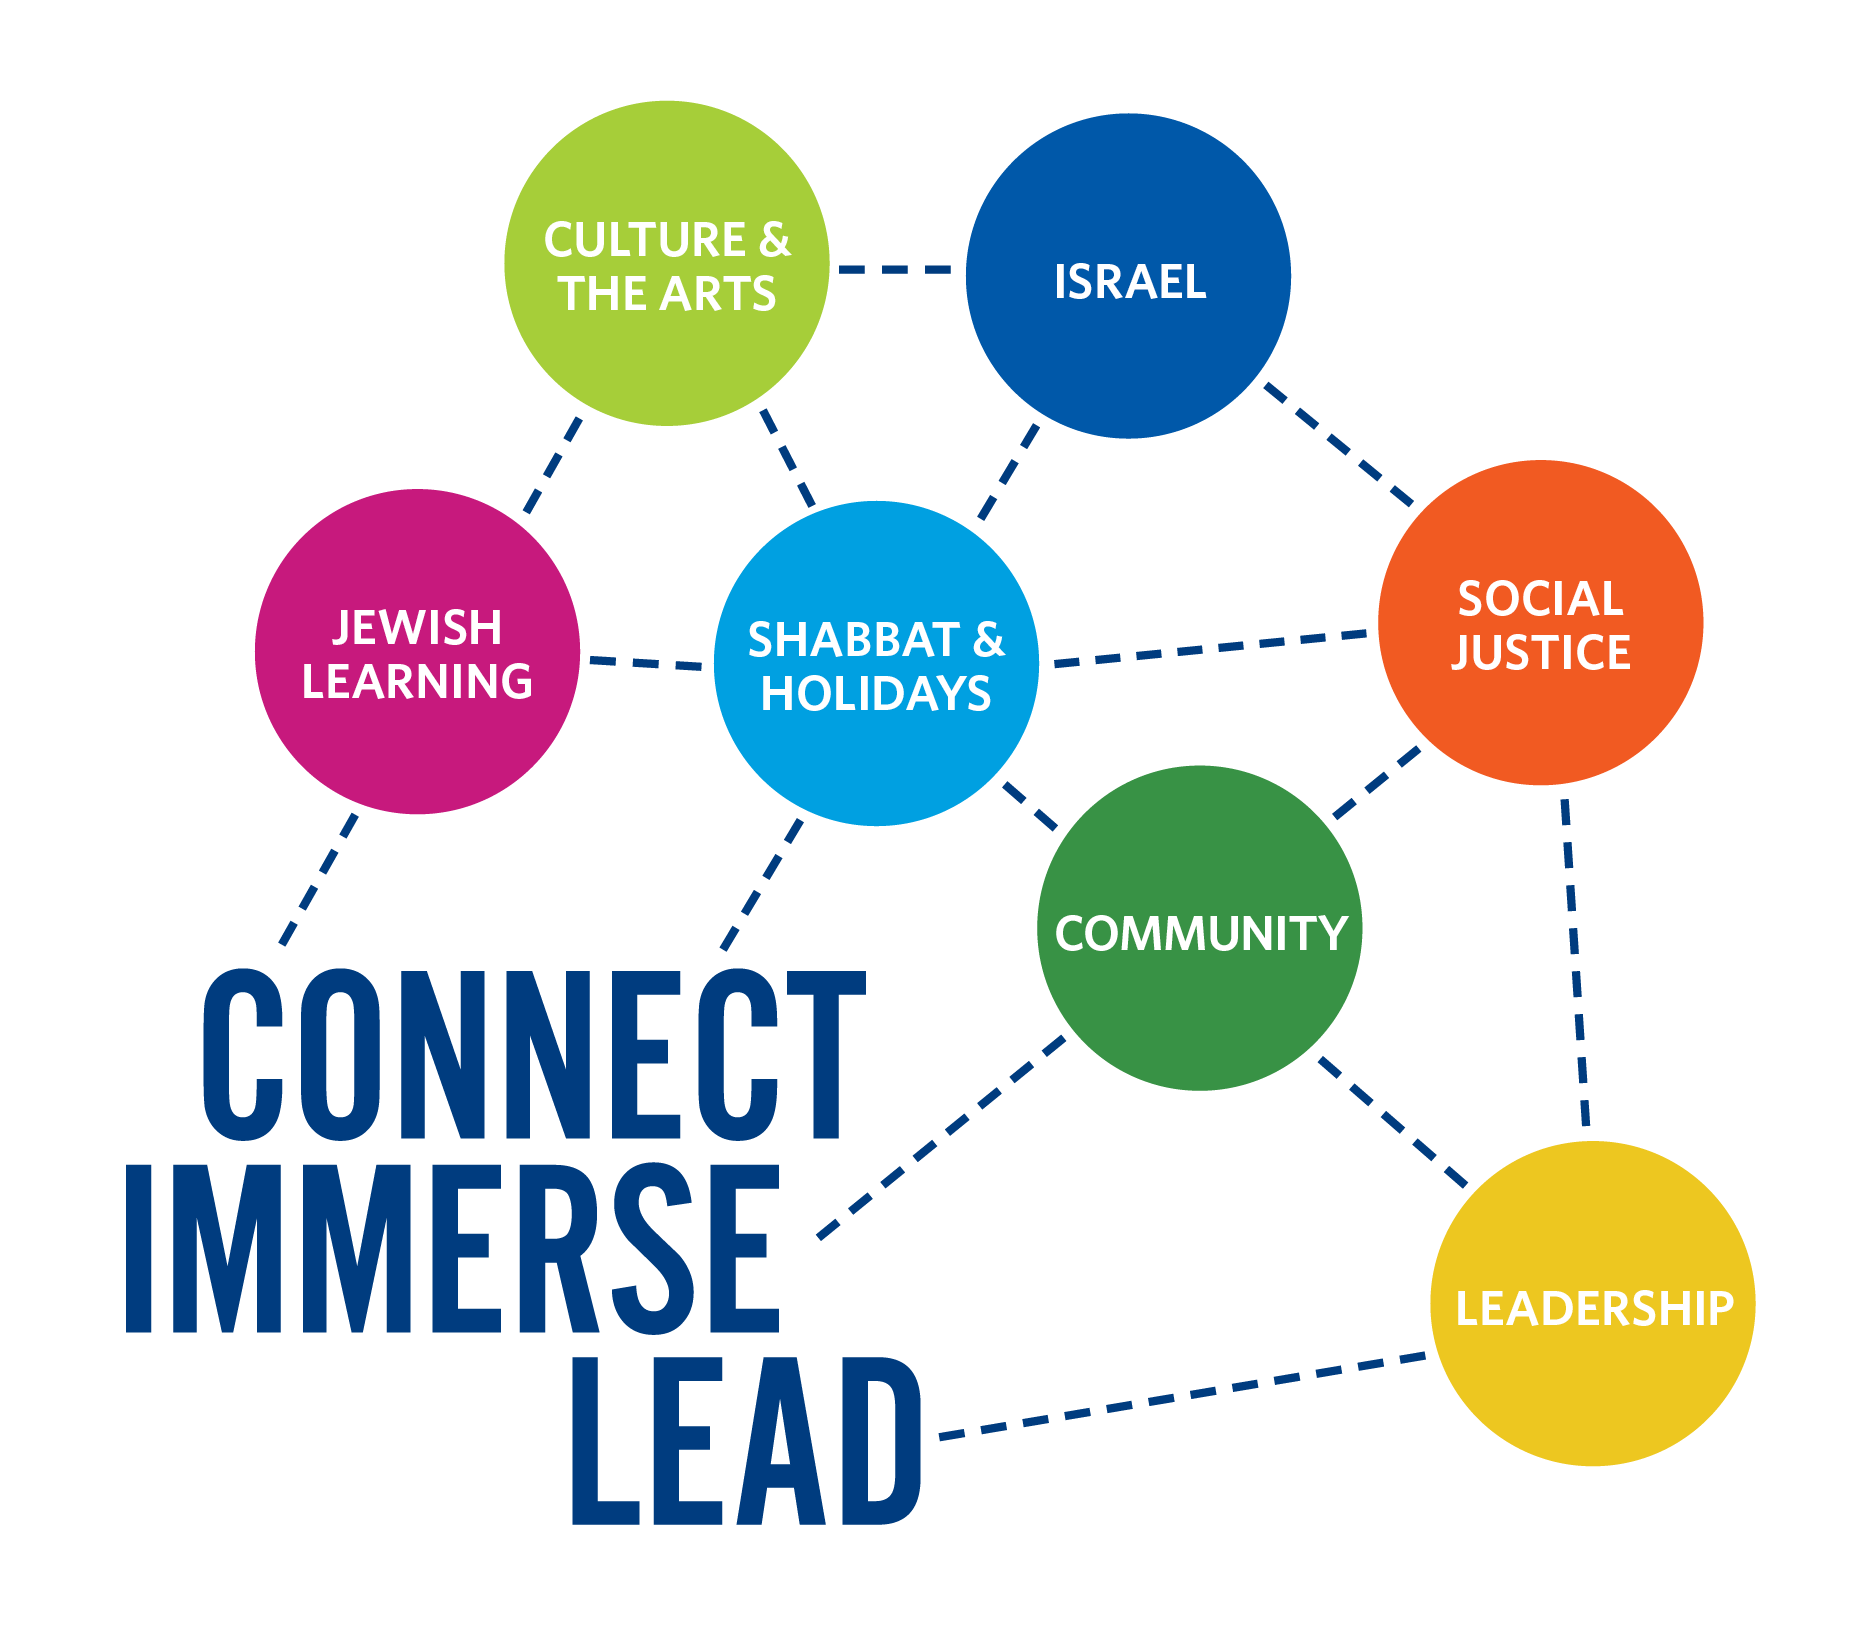 ConnectImerseLeadDiagram1.png